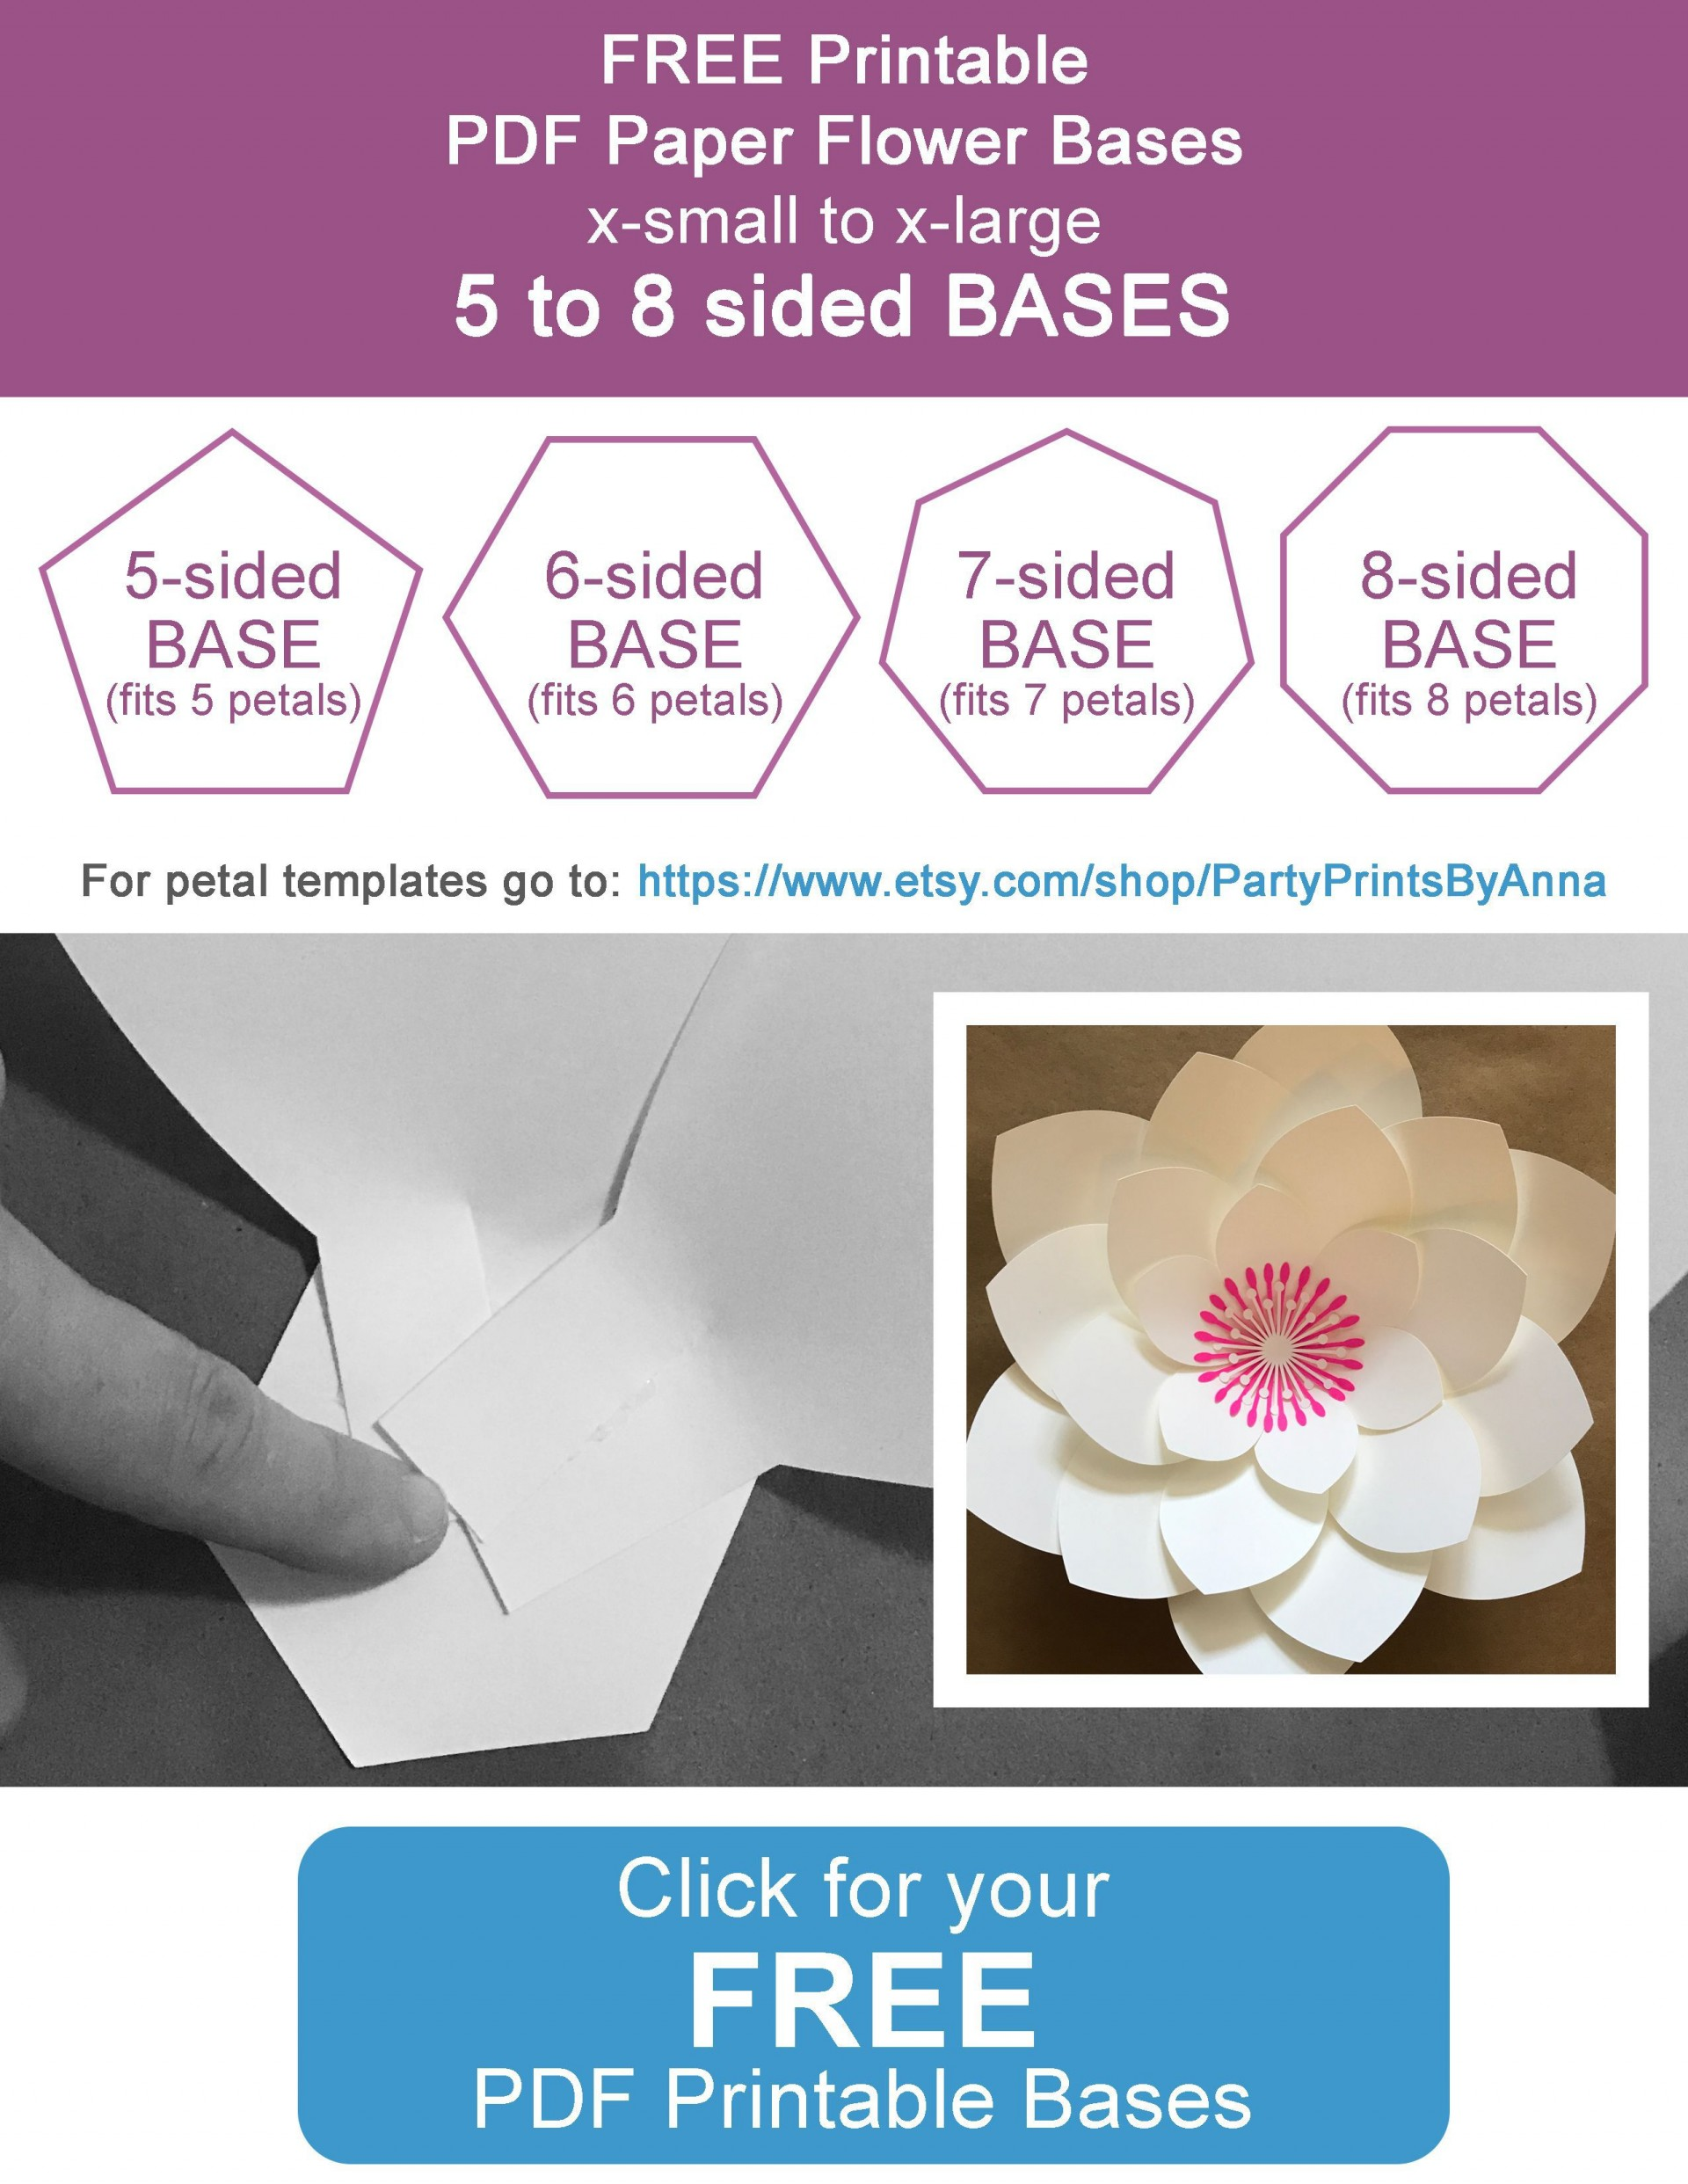 004 Fascinating Paper Flower Template Free Concept  Large Extra Printable1920